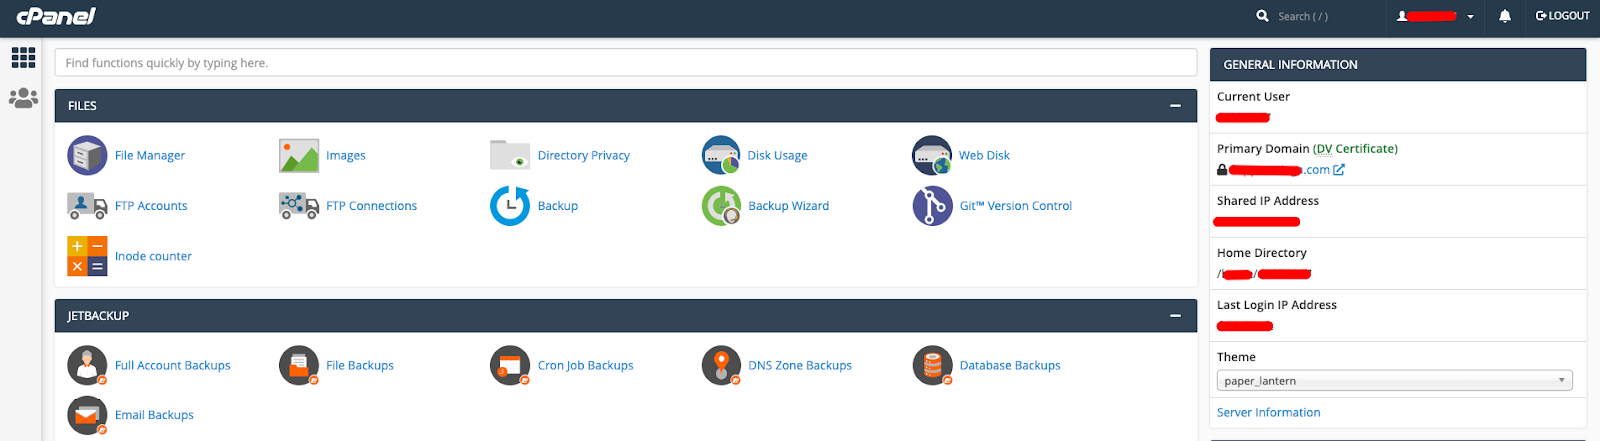 cPanel Niagahoster 4